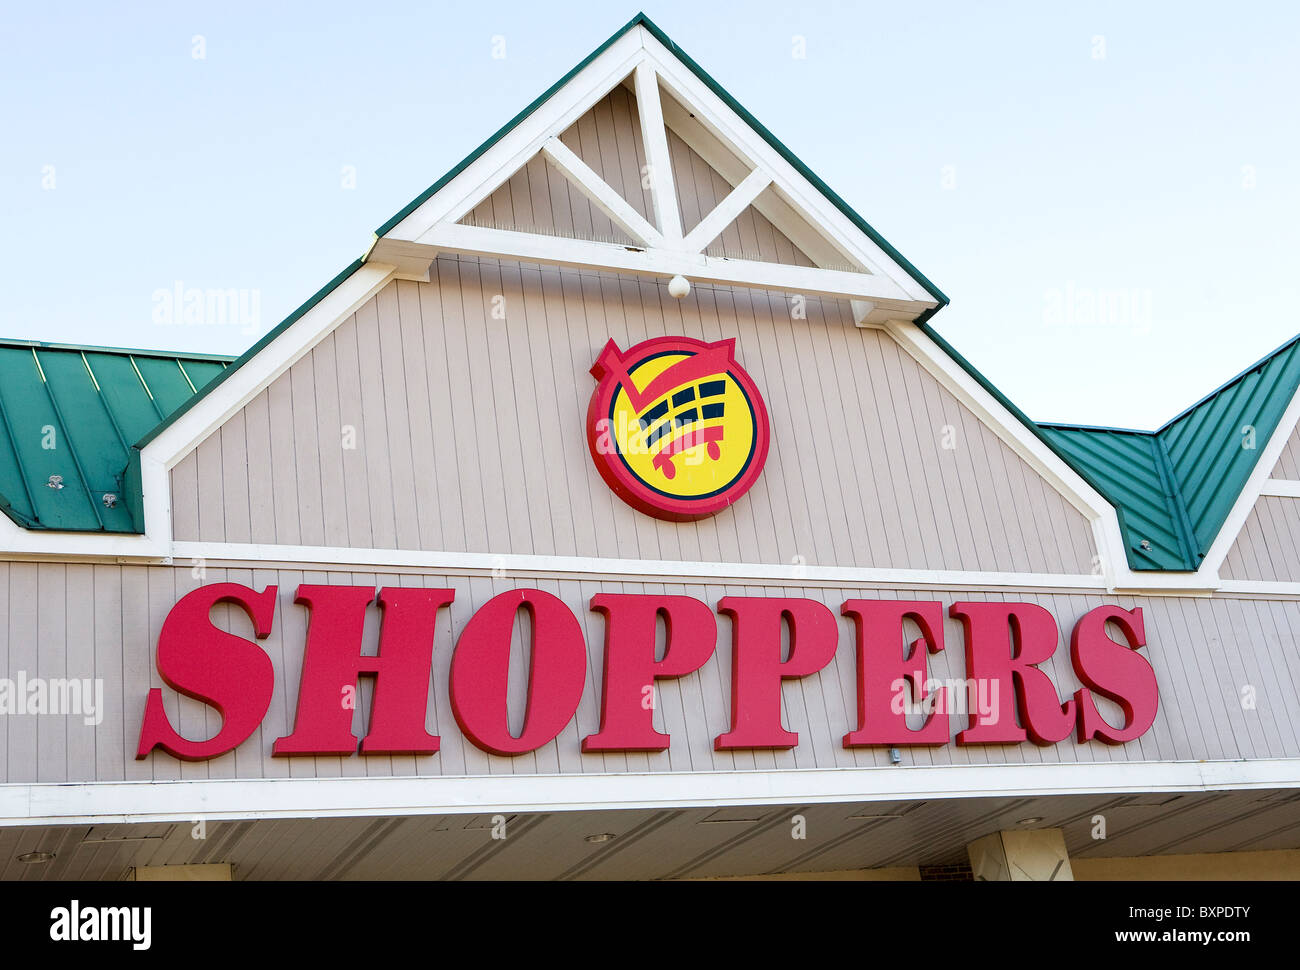 A Shoppers grocery store.  - Stock Image